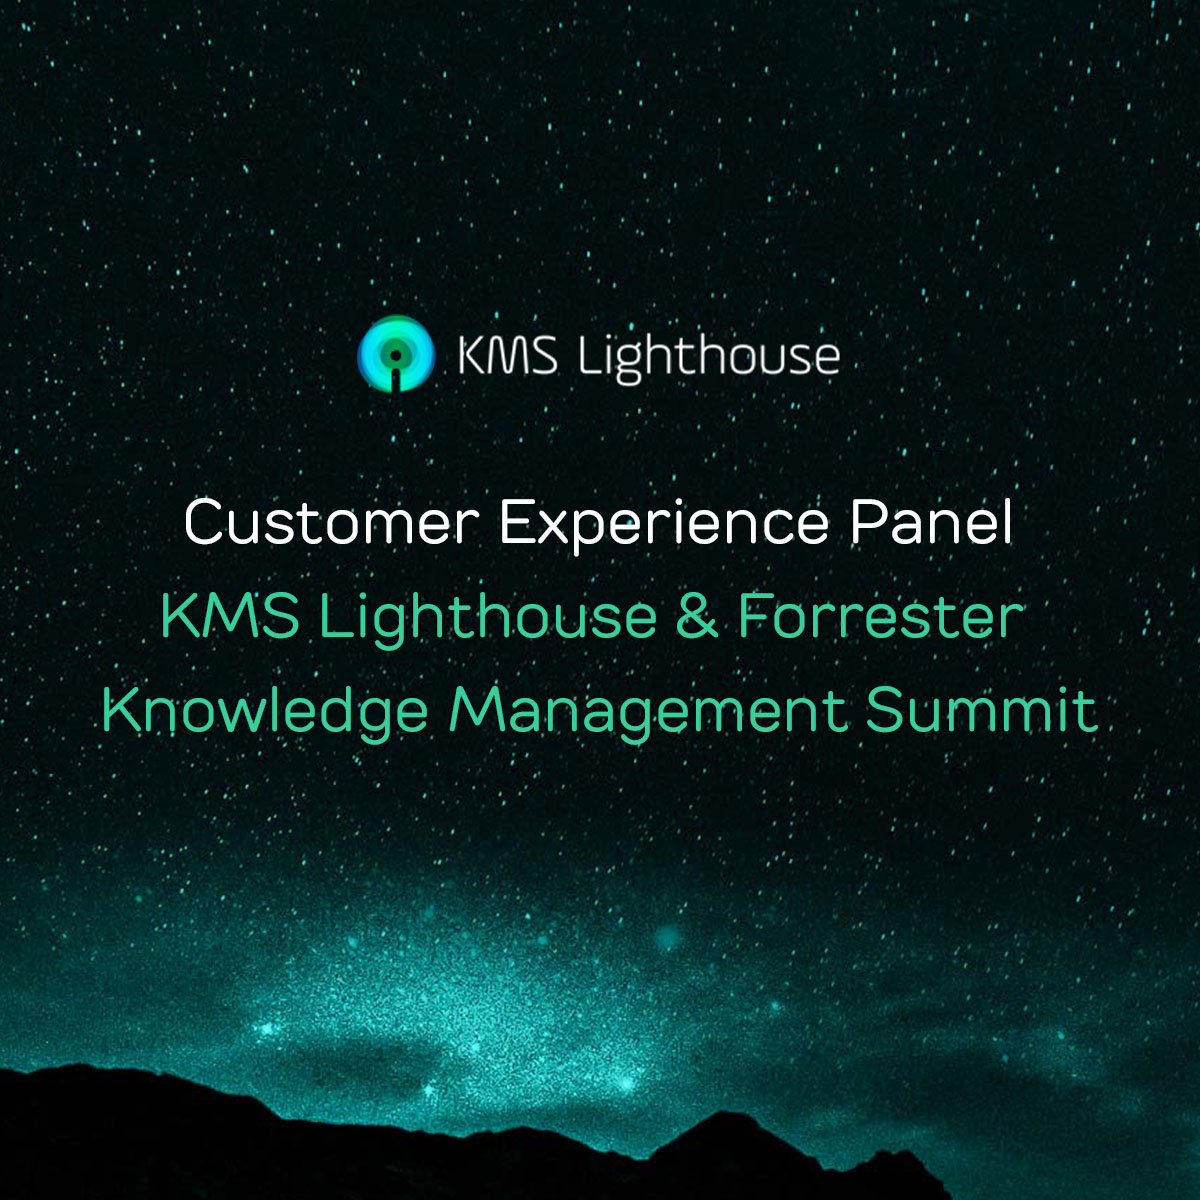 Watch the webinar:<br>Customer Experience Panel KMS Lighthouse & Forrester Knowledge Management Summit